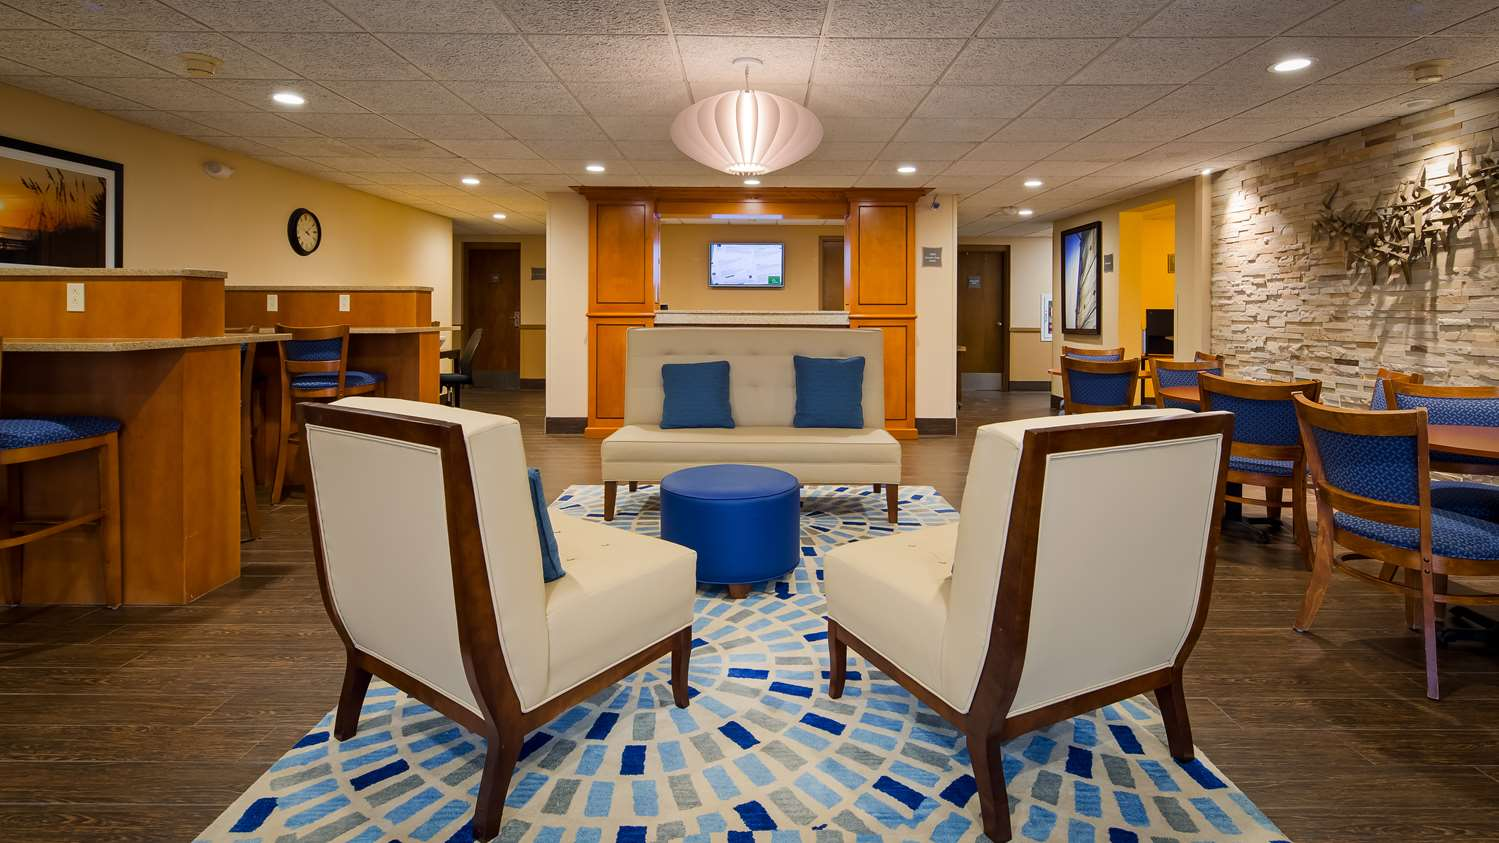 Best Western Hotel Port Clinton, OH - See Discounts